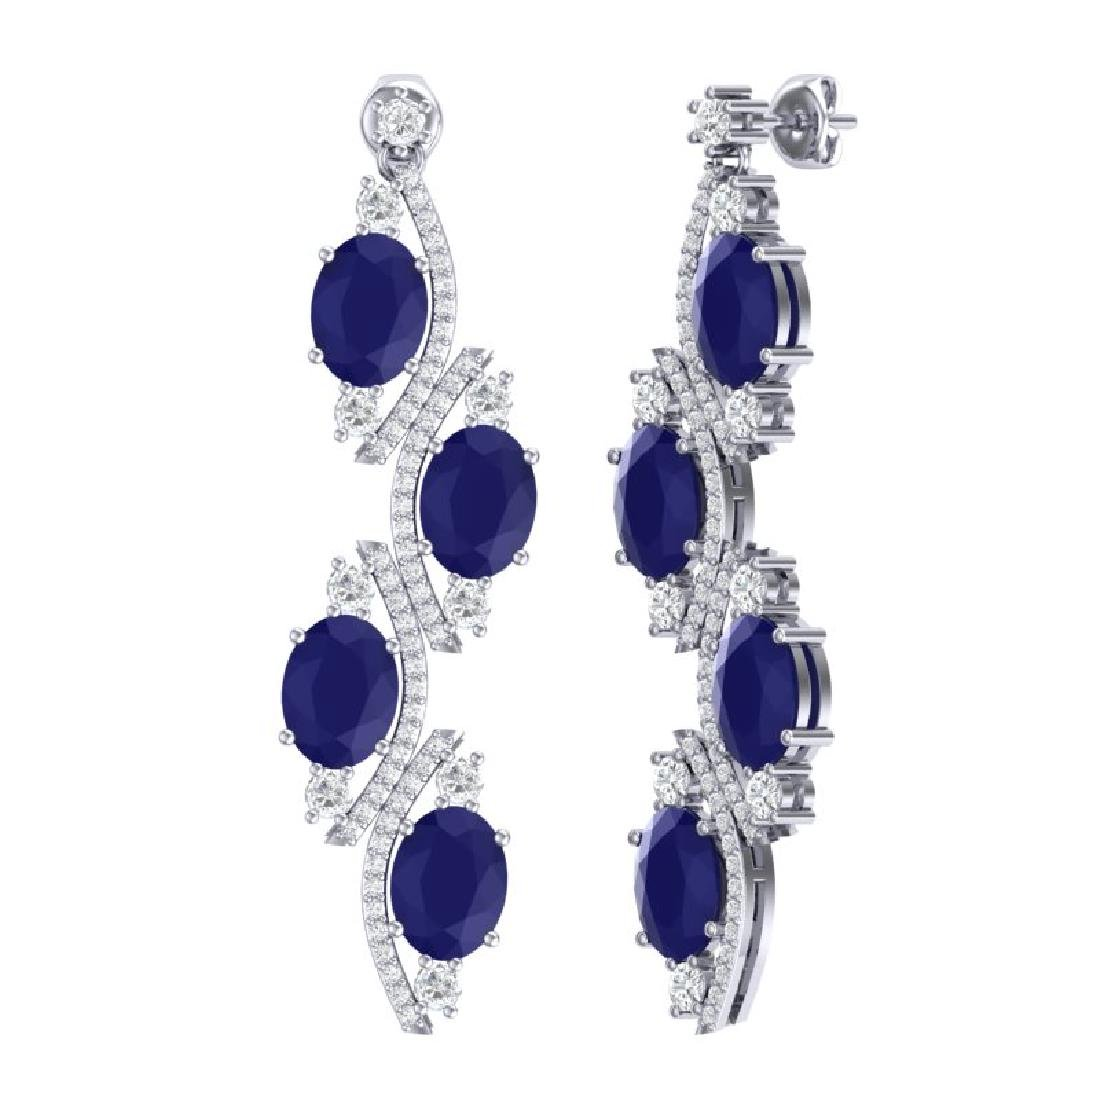 16.12 CTW Royalty Sapphire & VS Diamond Earrings 18K - 3